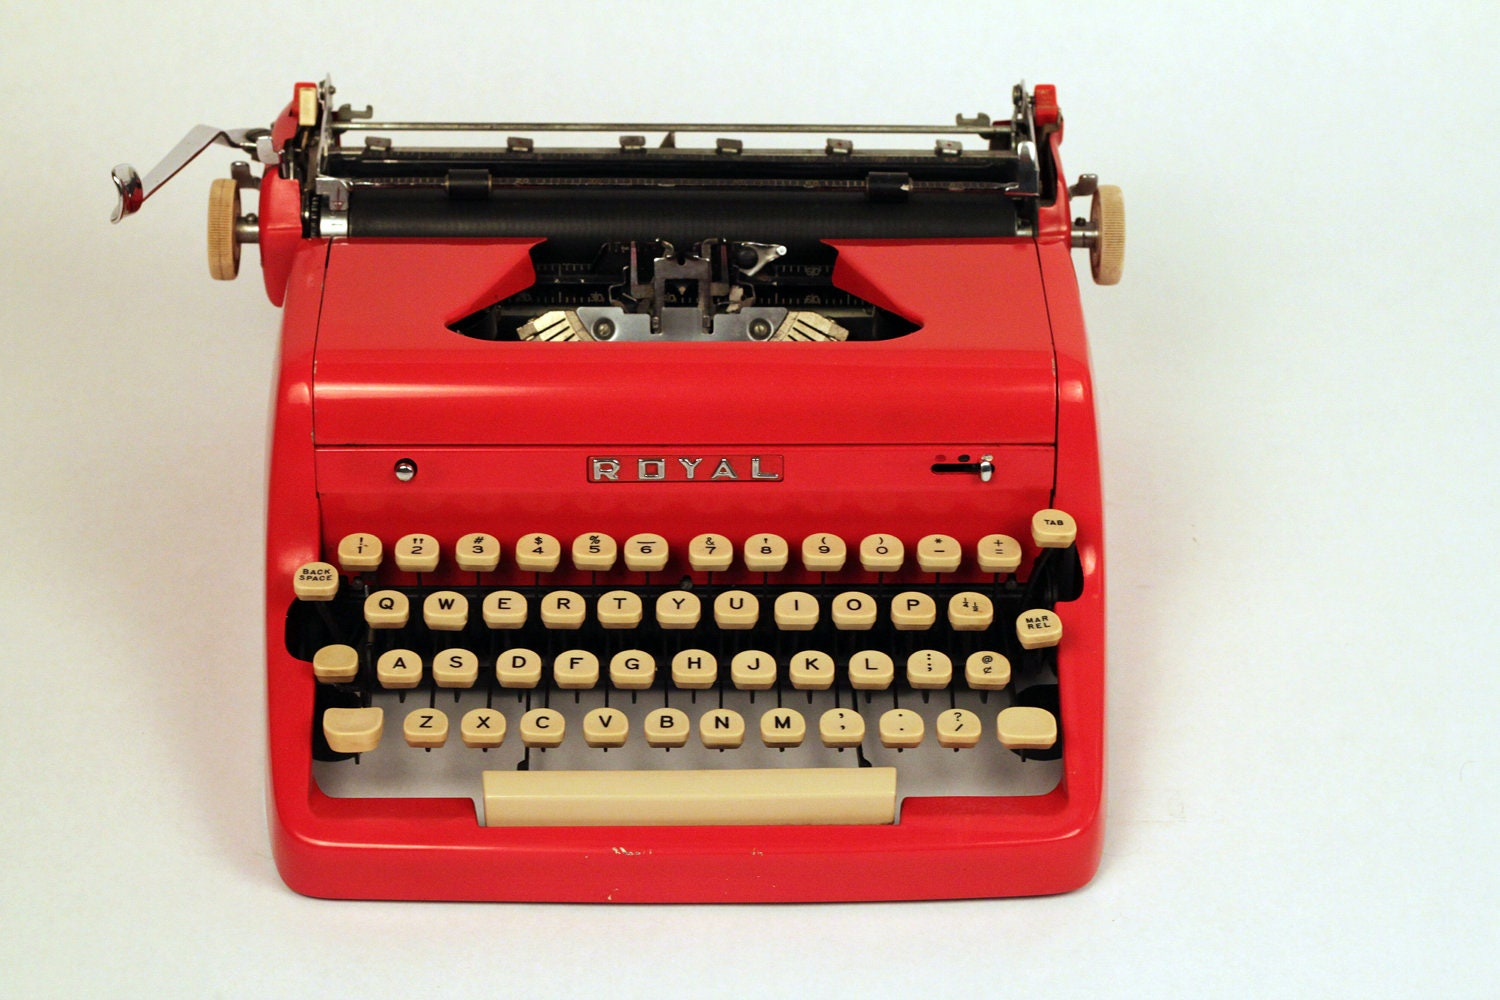 ROYAL Quiet De Luxe manual typewriter, with case (non-working) - typeBtypewriters